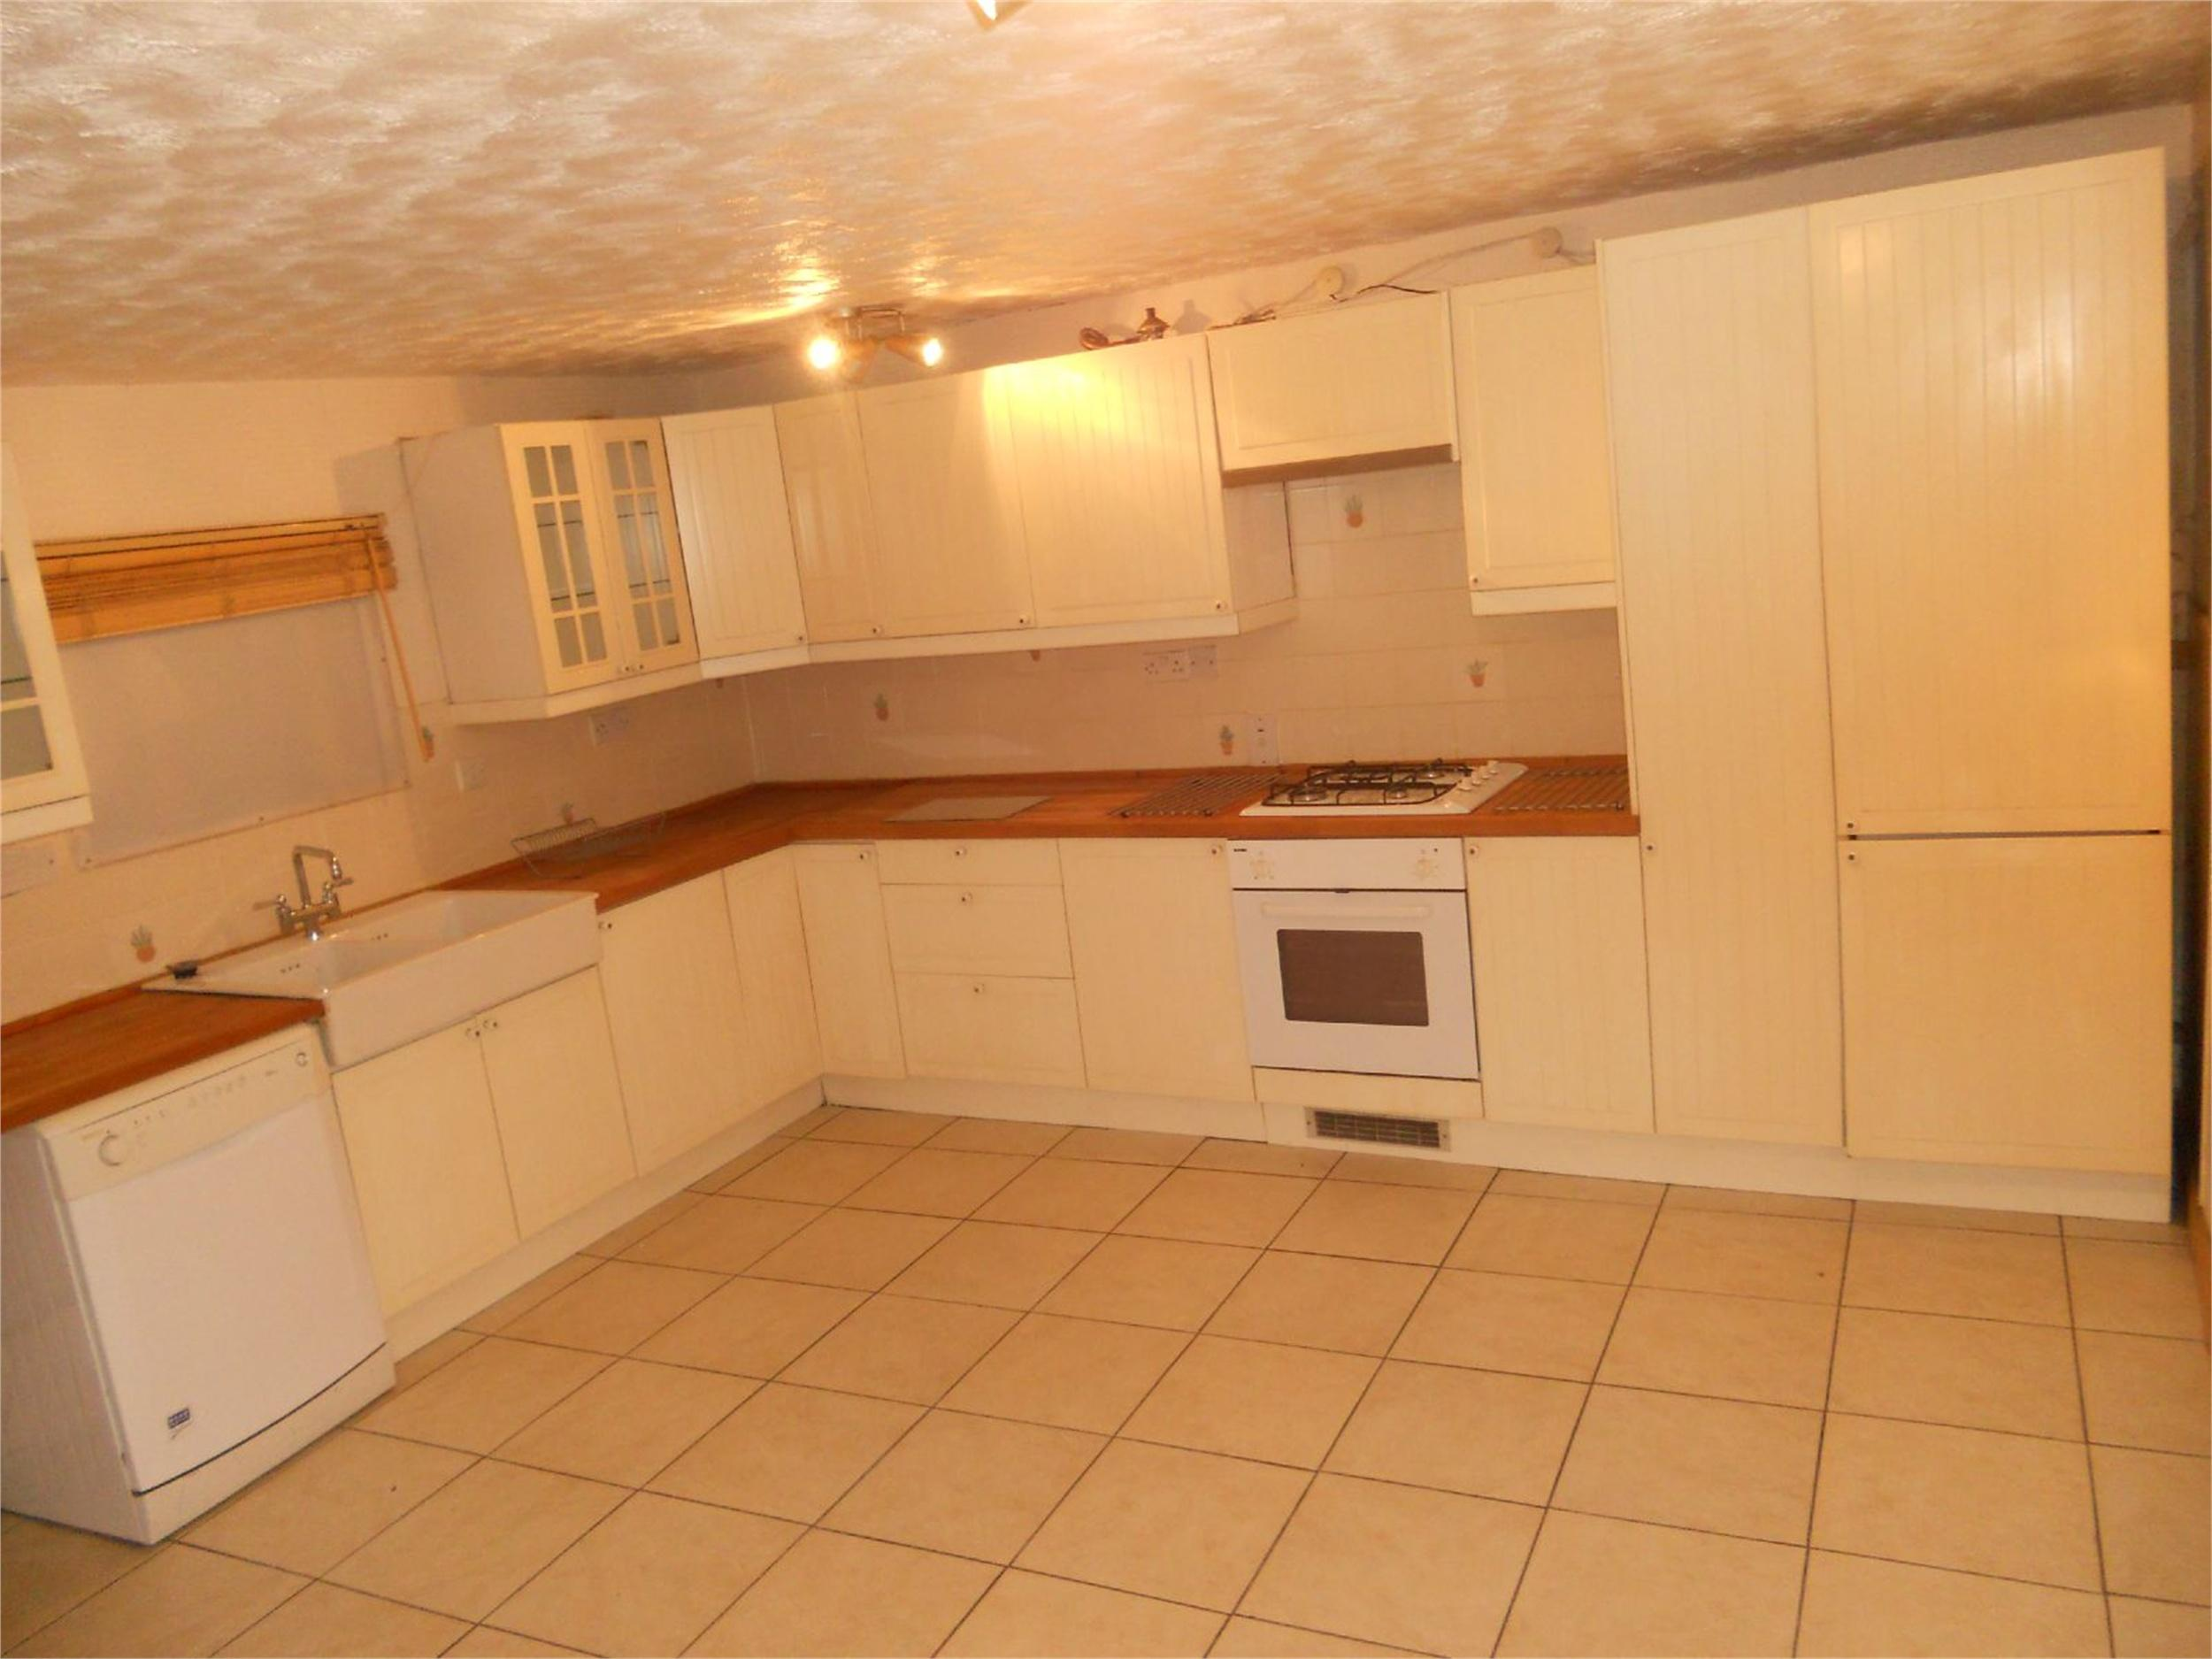 Yorkshire Terrace: Whitegates Keighley 1 Bedroom Terraced House To Let In 76